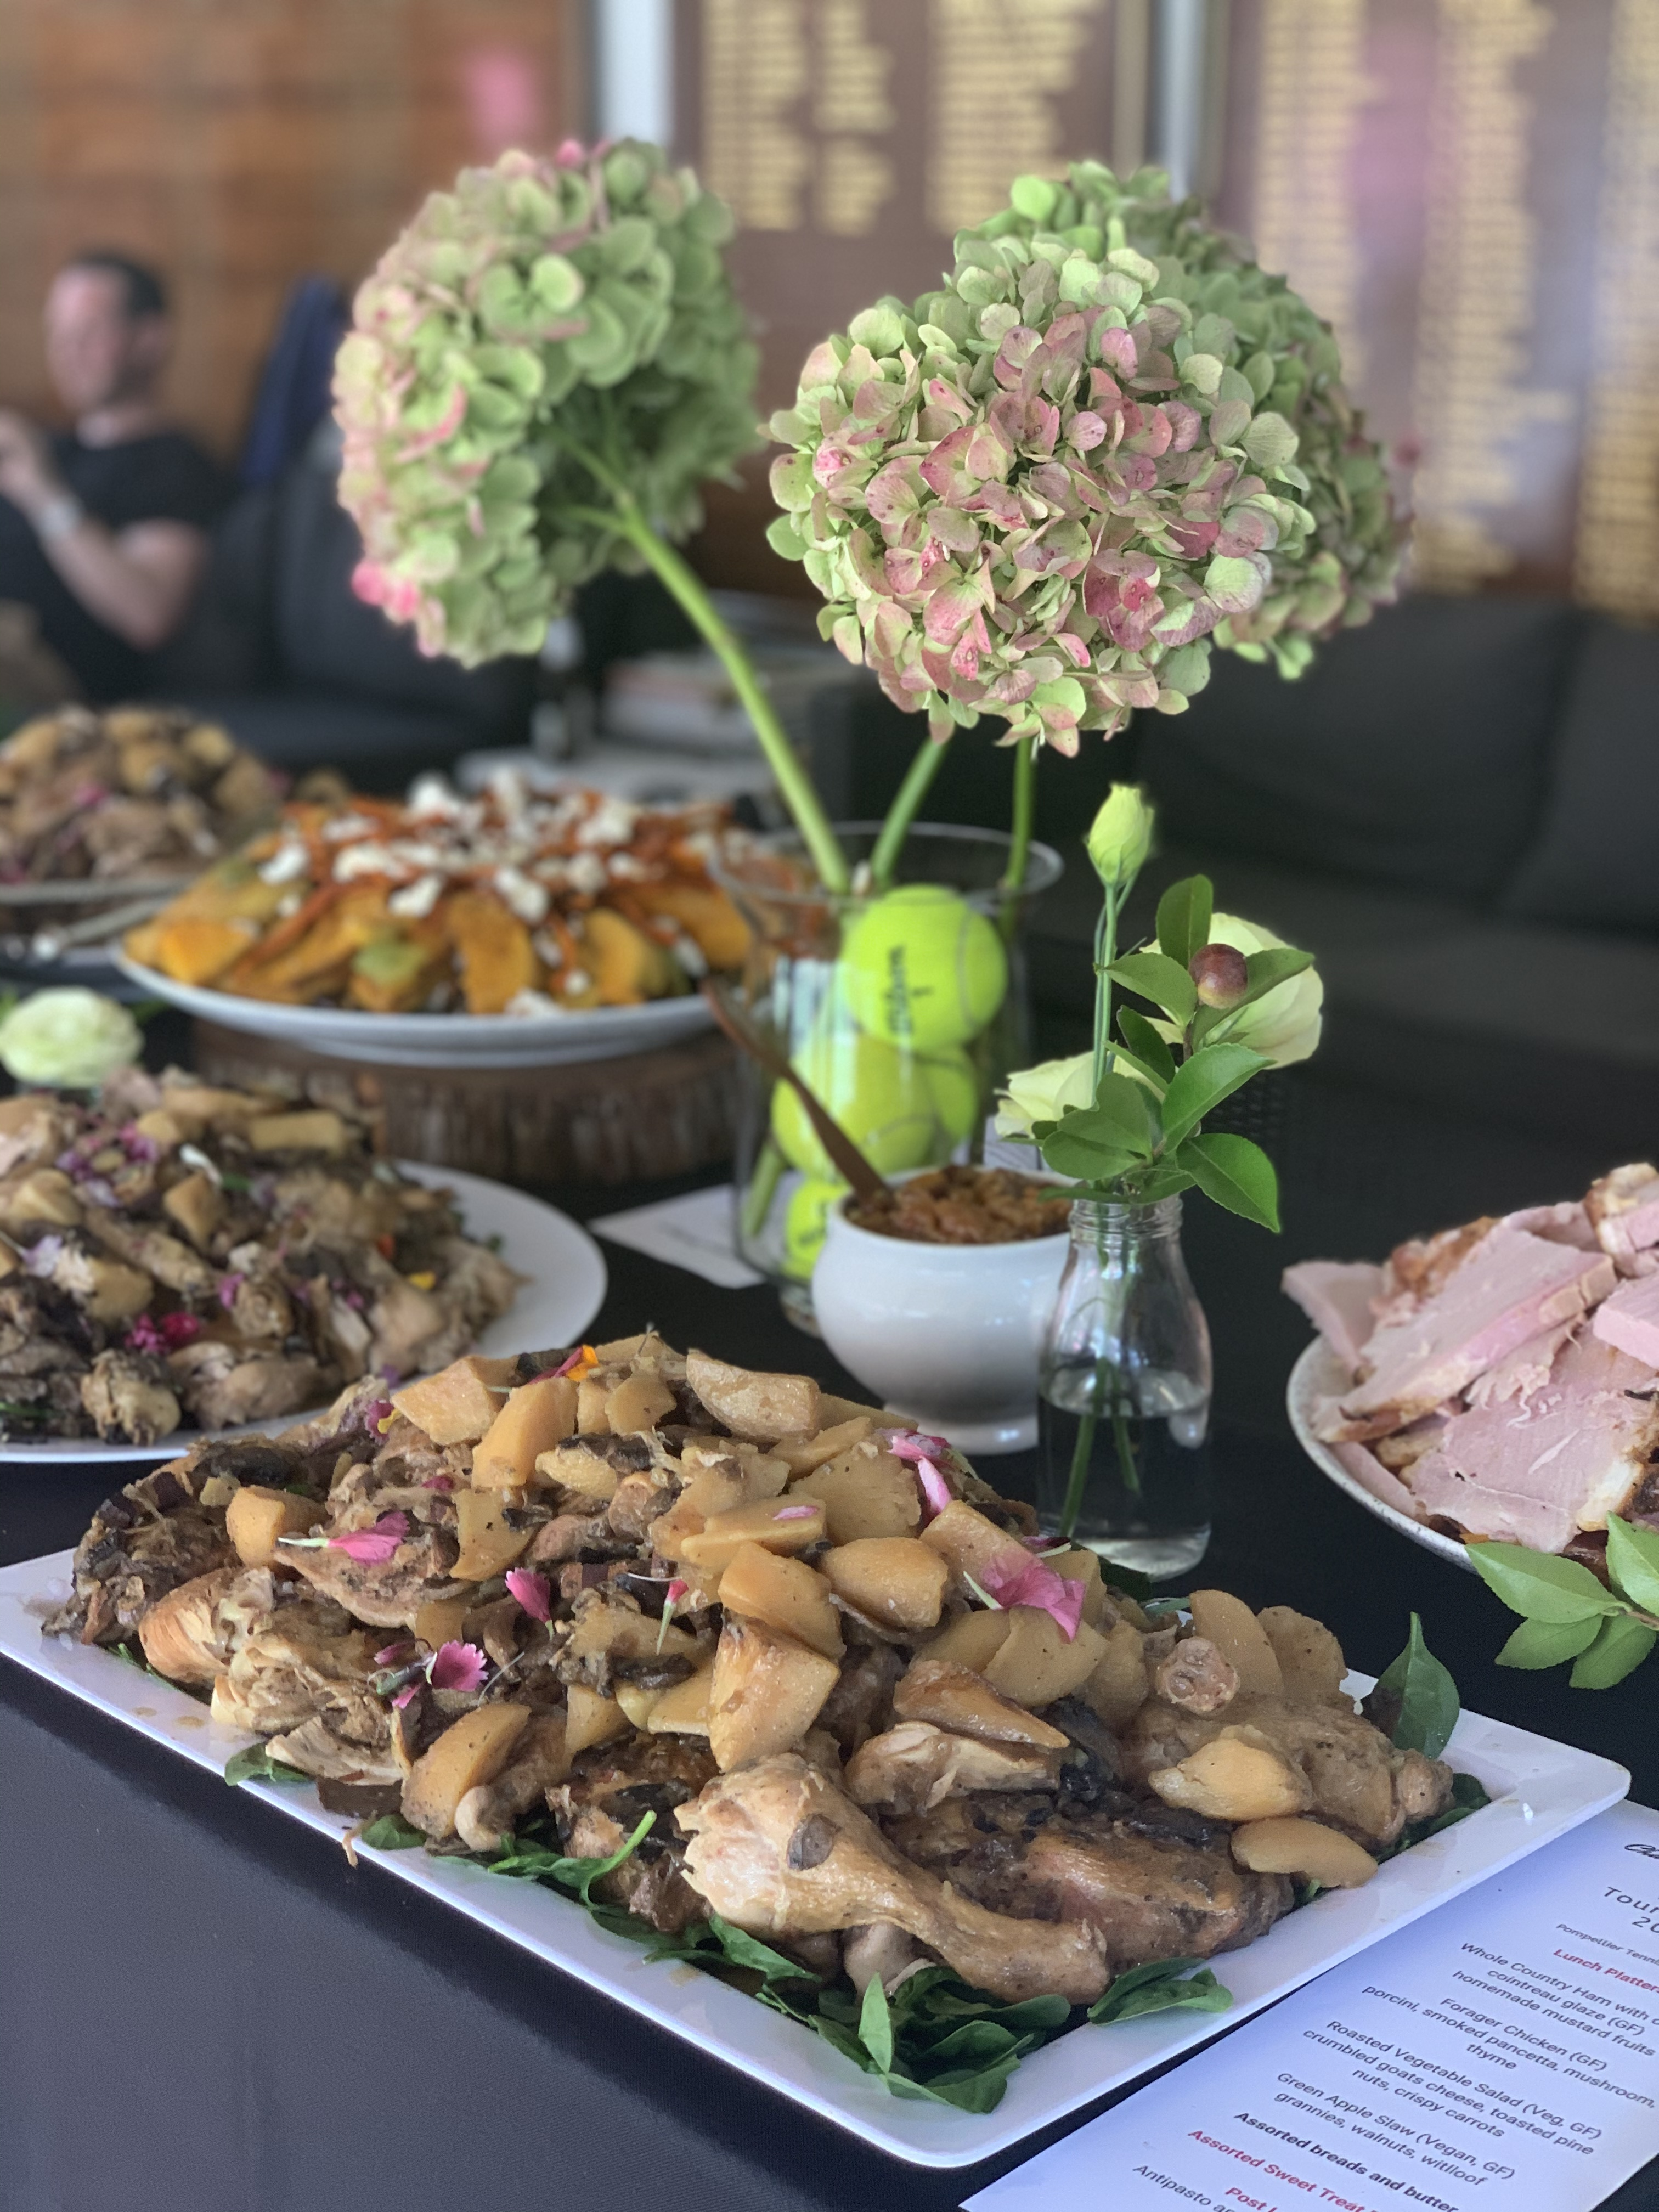 Chicken and porcini platter ready for tennis players at a Bollinger event